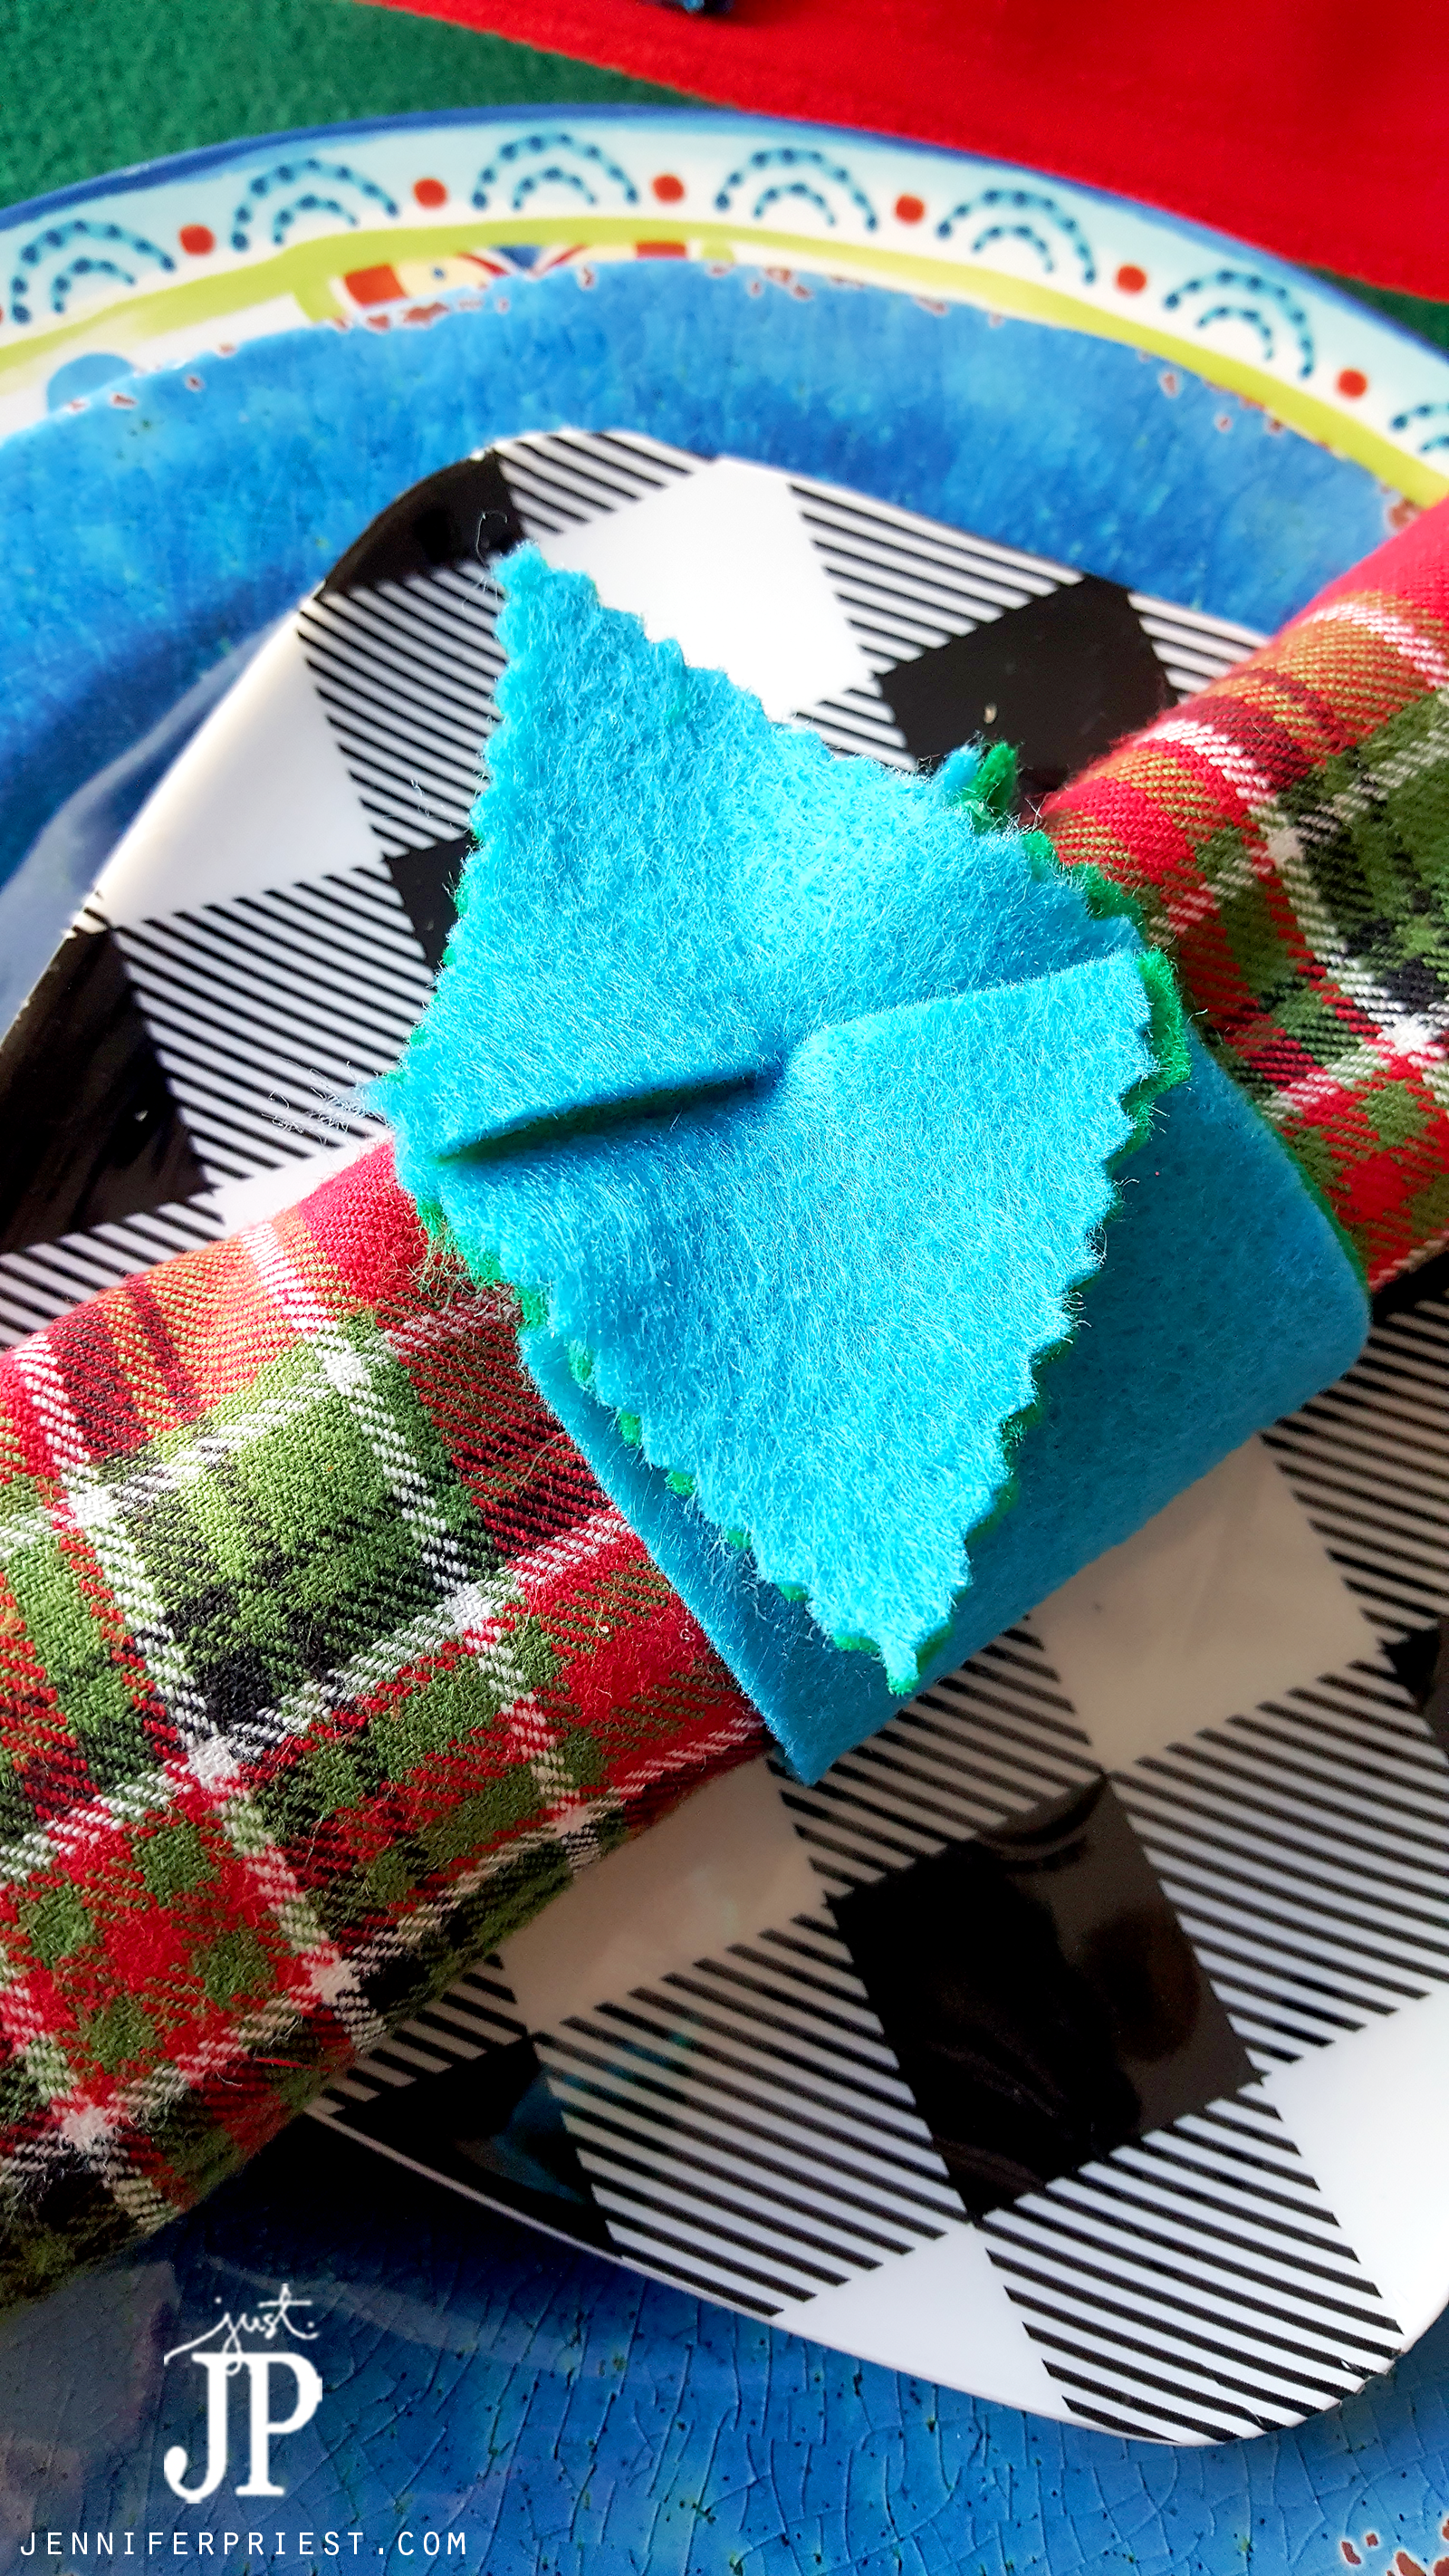 Felt Diy Placemats Coasters And Napkin Rings In Under 15 Minutes Craftlightning Holiday Edition Diy Placemats Felt Diy Crafts